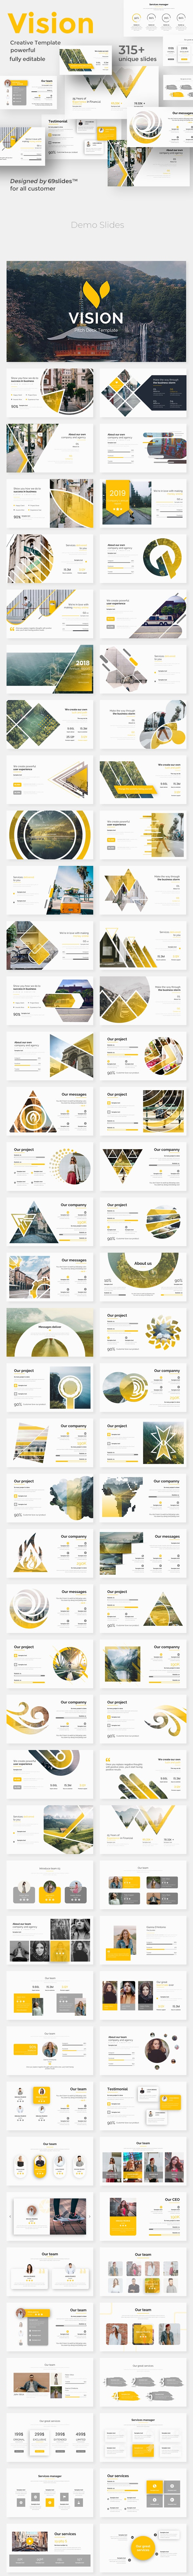 Vision Board Pitch Deck Powerpoint Template - Creative PowerPoint Templates